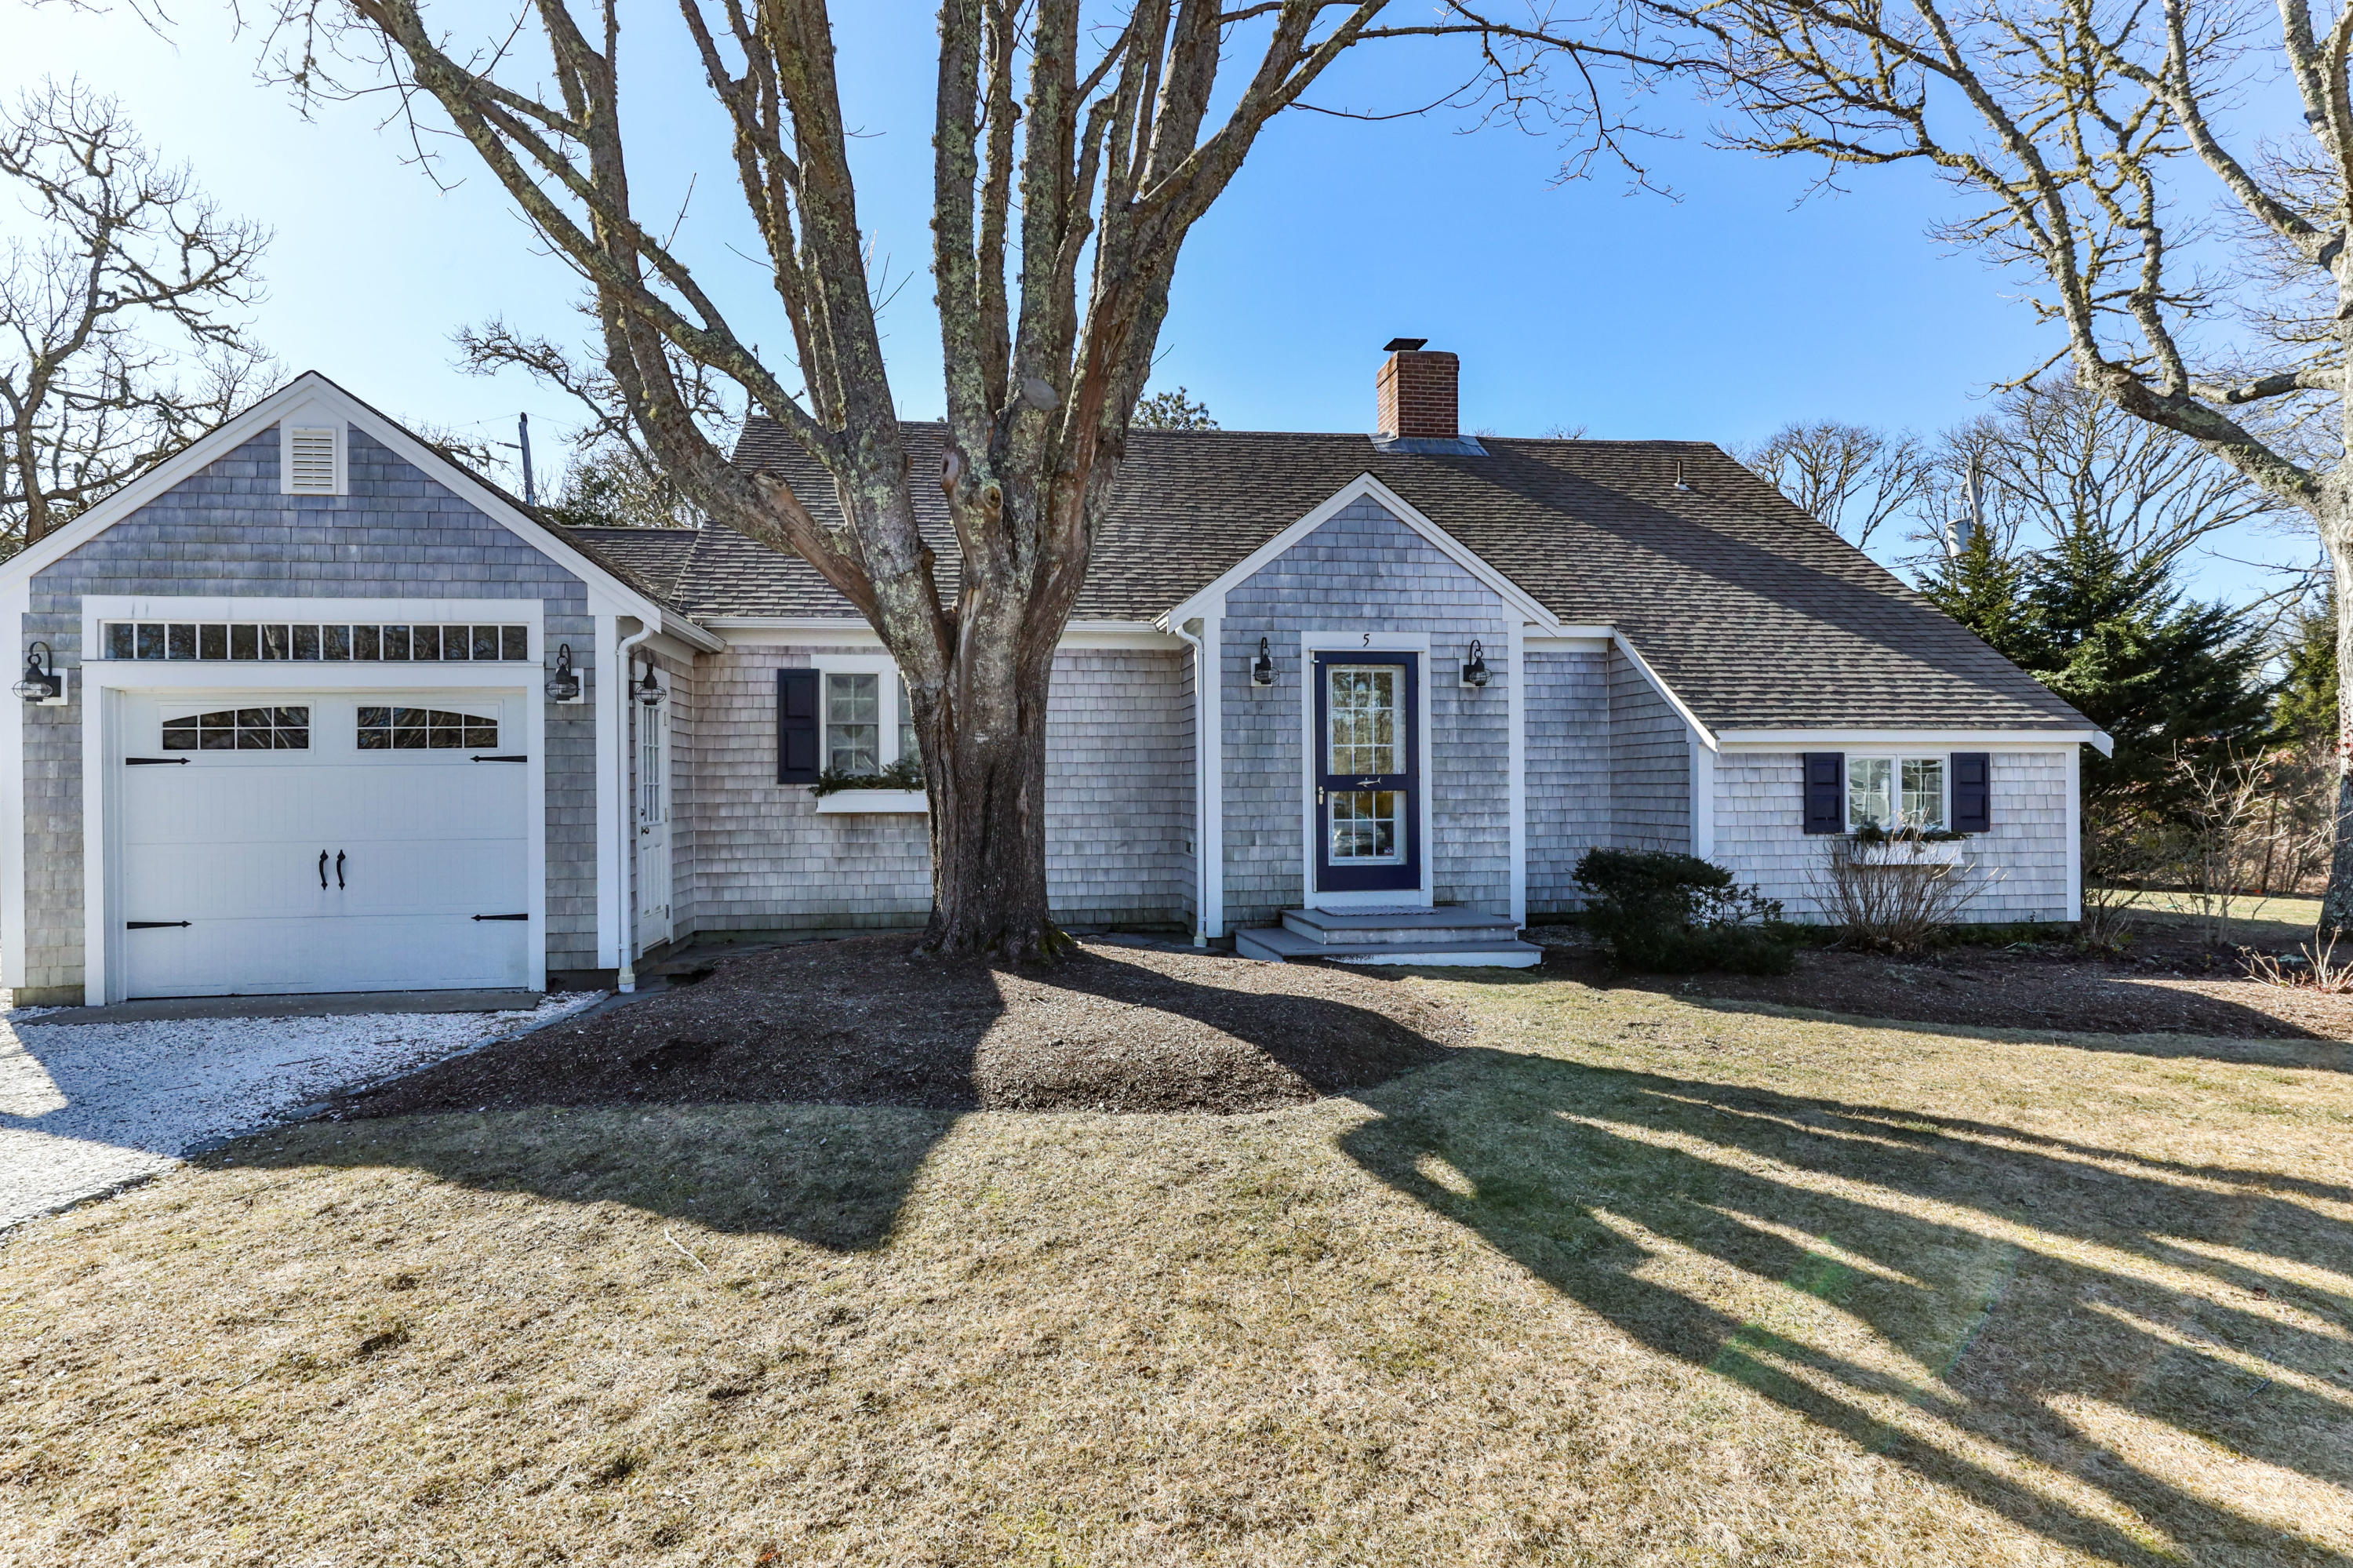 click to view more details 5 Shirley Drive, South Chatham, MA 02659